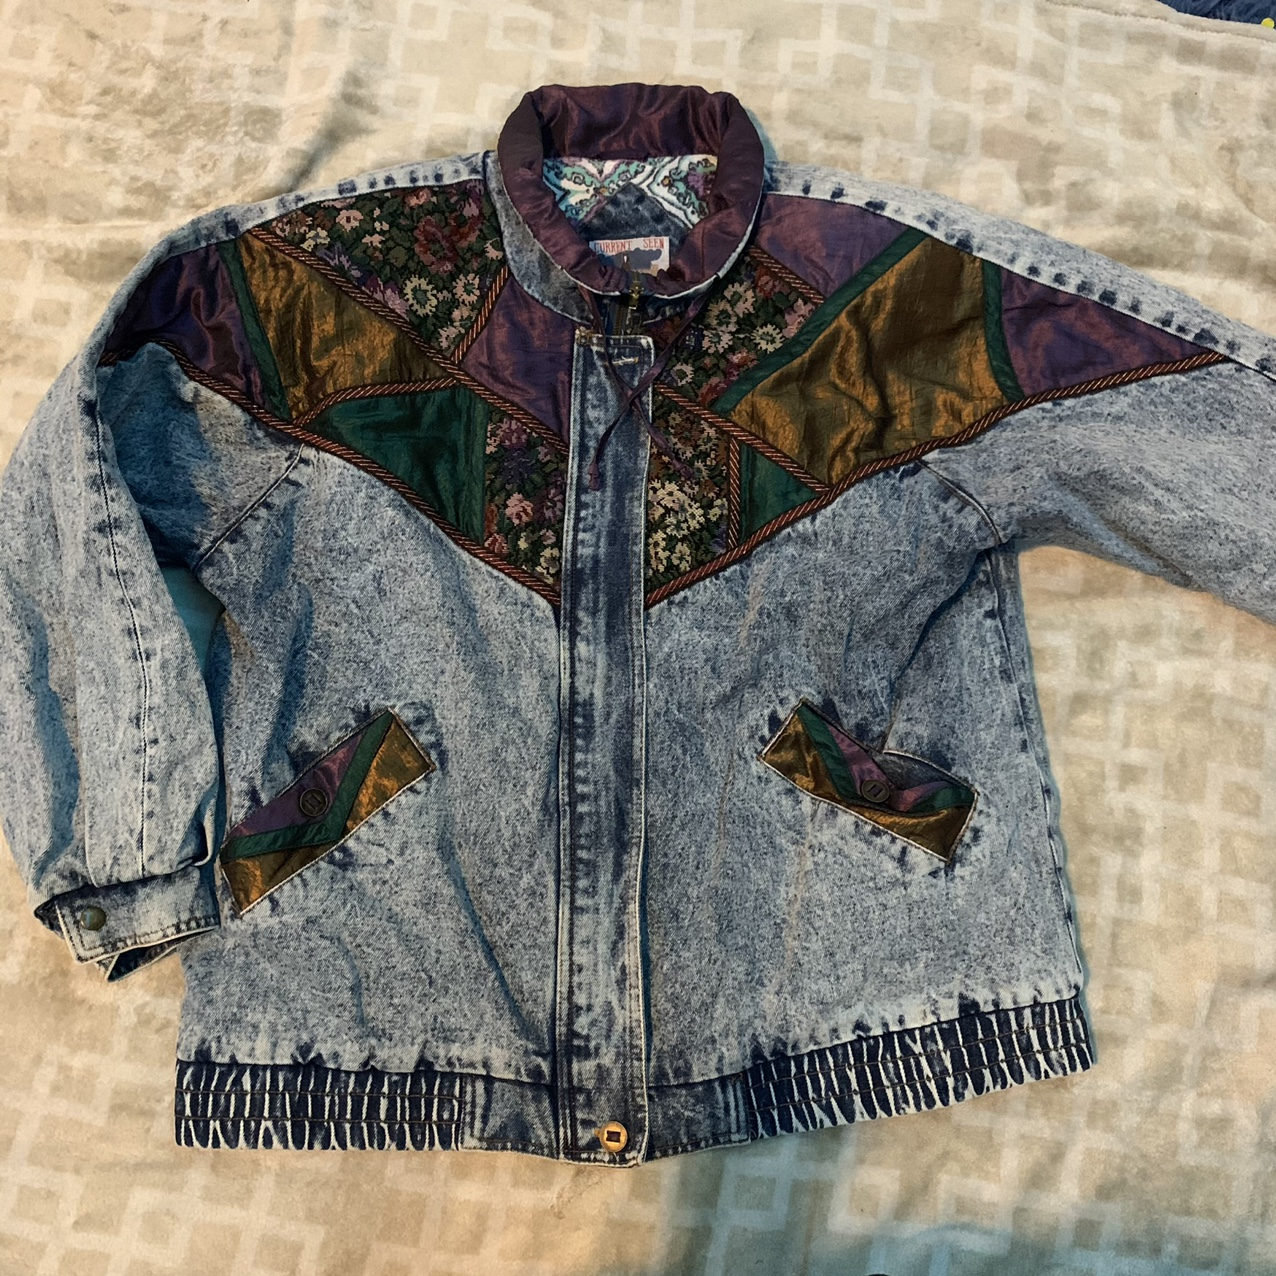 Product Image 1 - brand: current seen traits: vintage heavy